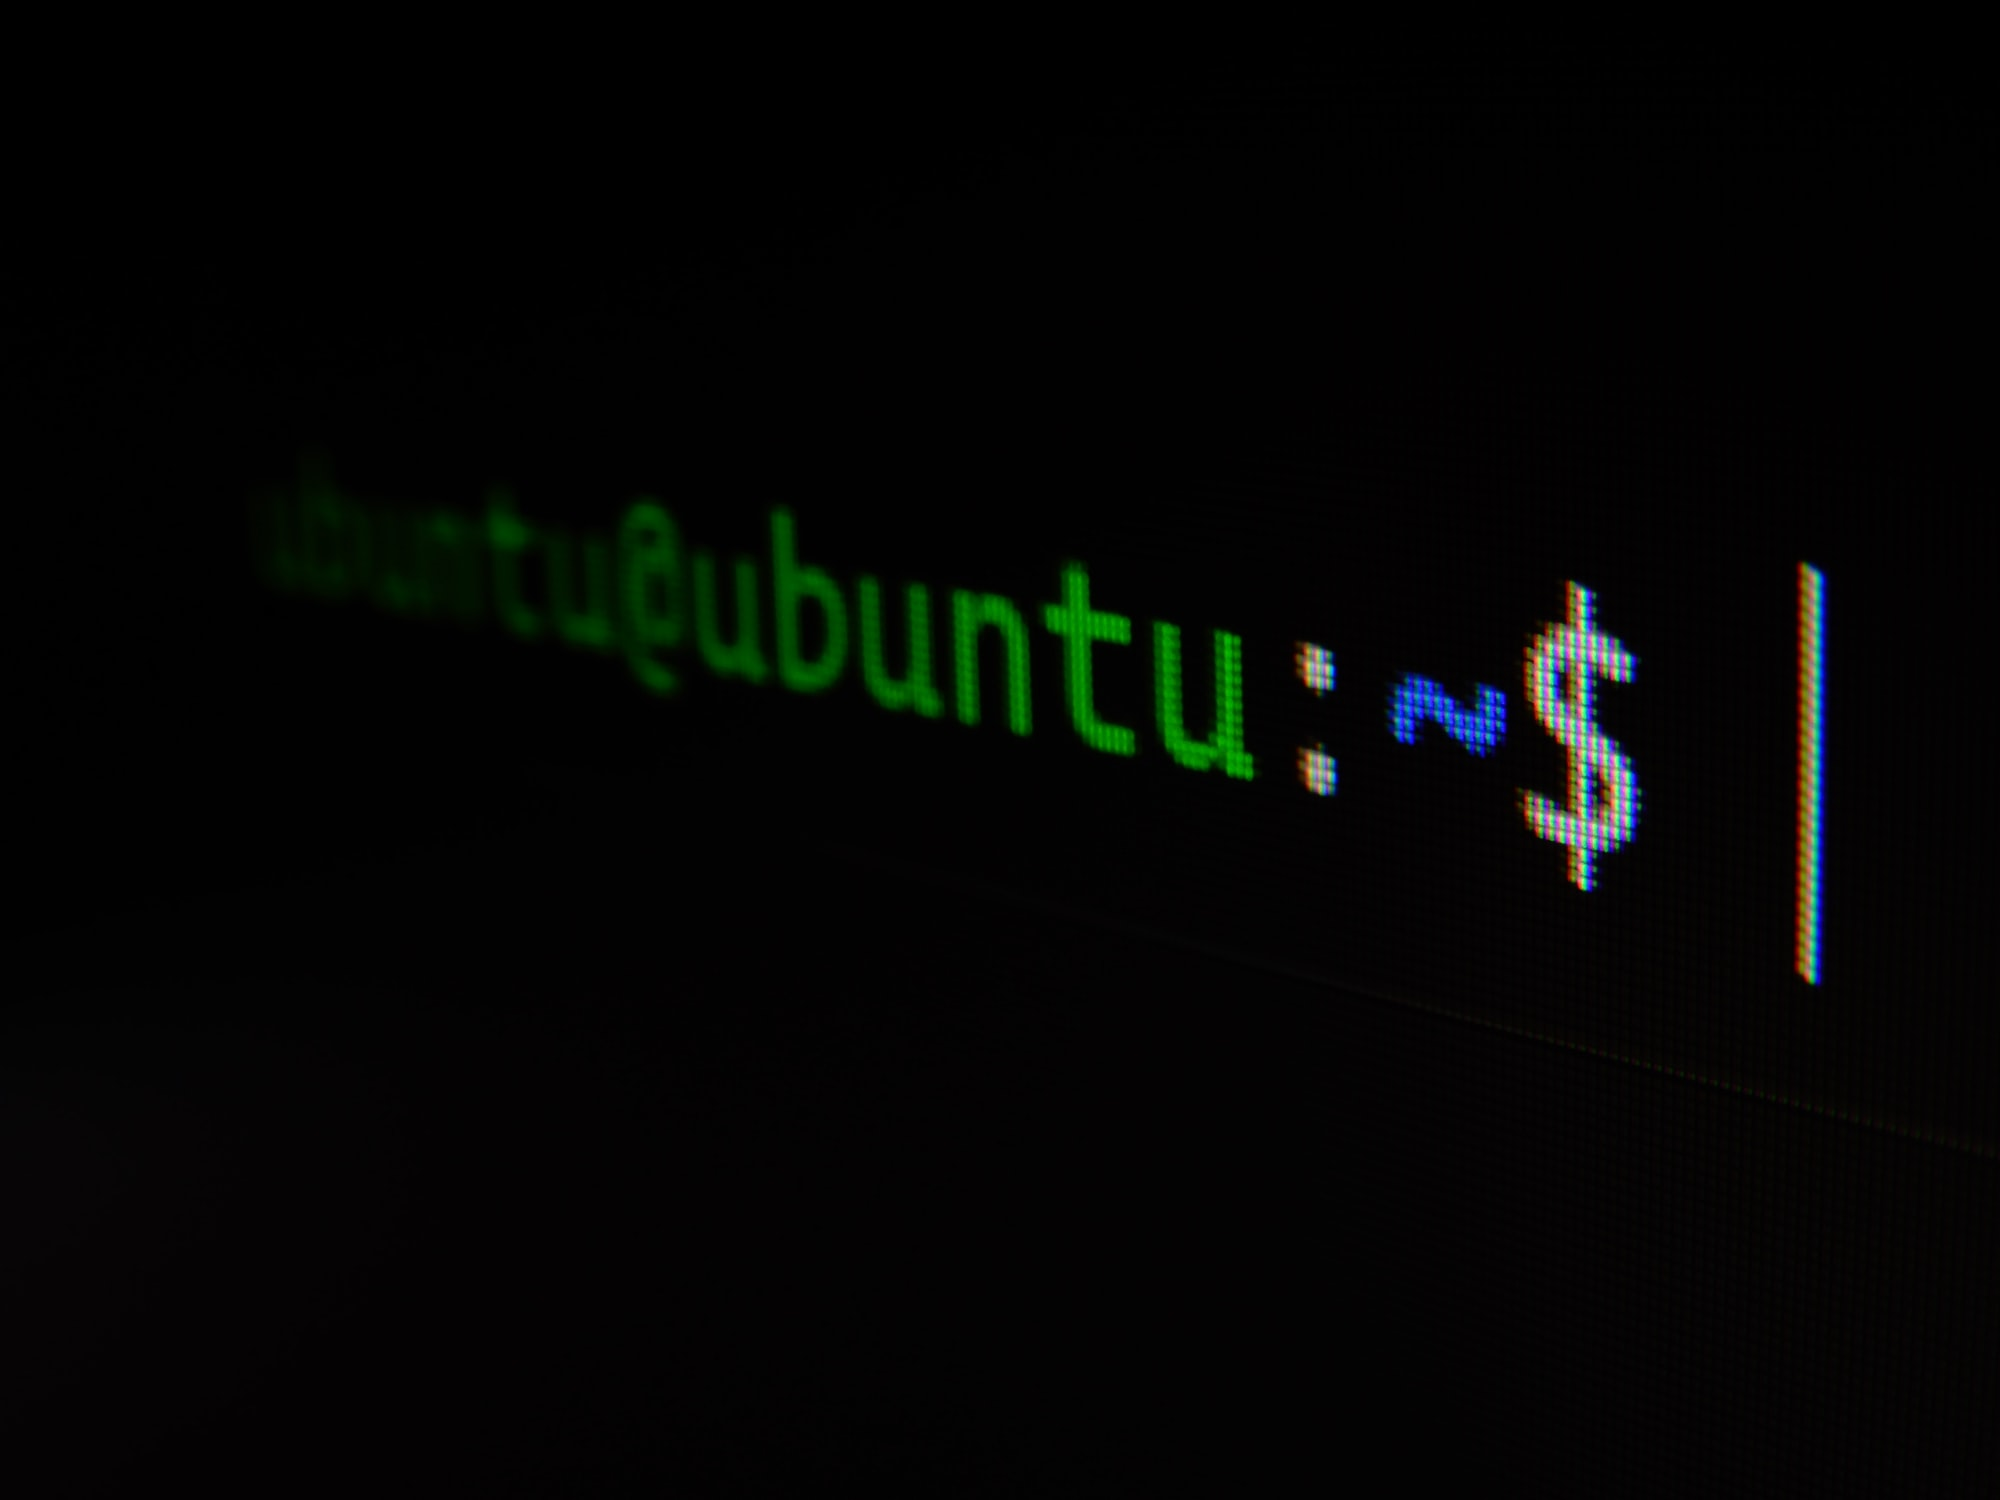 How to check if a string is empty in Bash